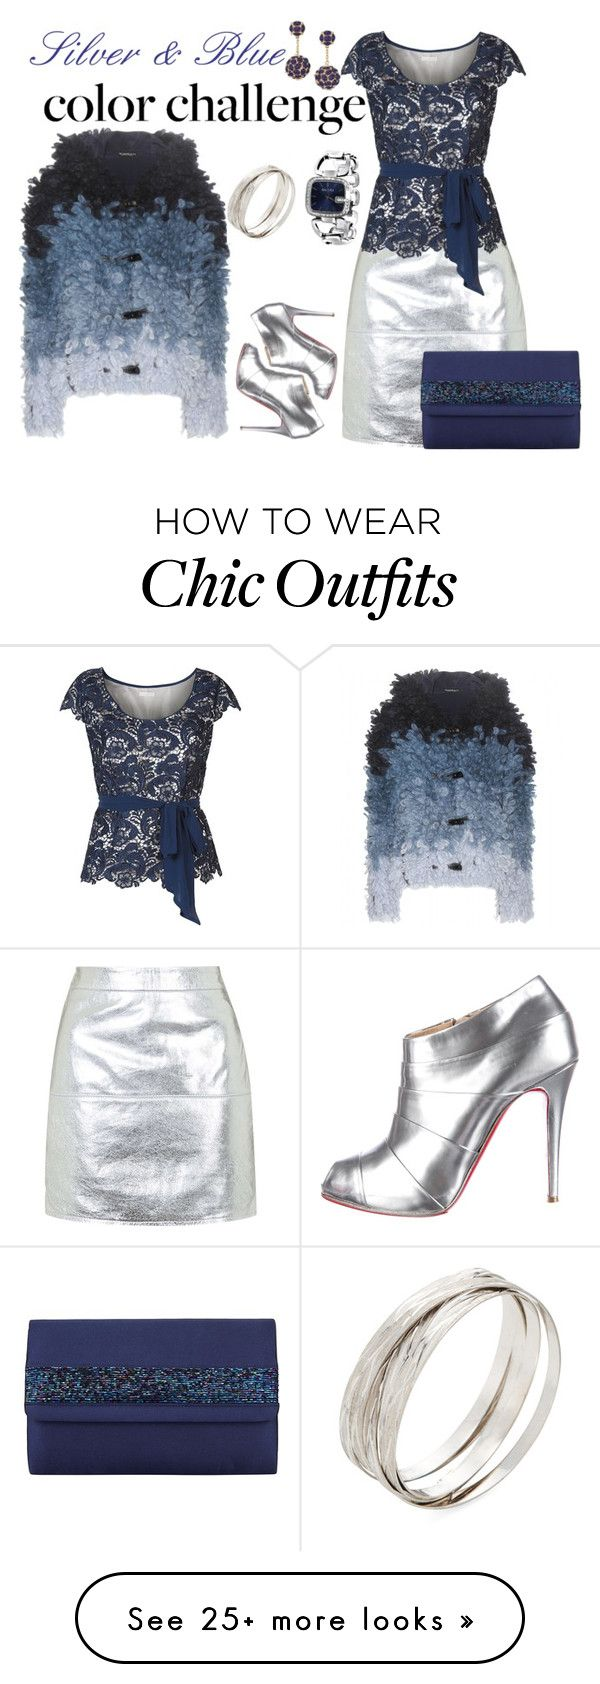 """Le Freak C'est Chic - Blue & Silver"" by tweedleduh on Polyvore featuring Tom Ford, Topshop, Jacques Vert, Christian Louboutin, Kenneth Jay Lane, Roberto Coin, Gucci, John Lewis and blueandsilver"